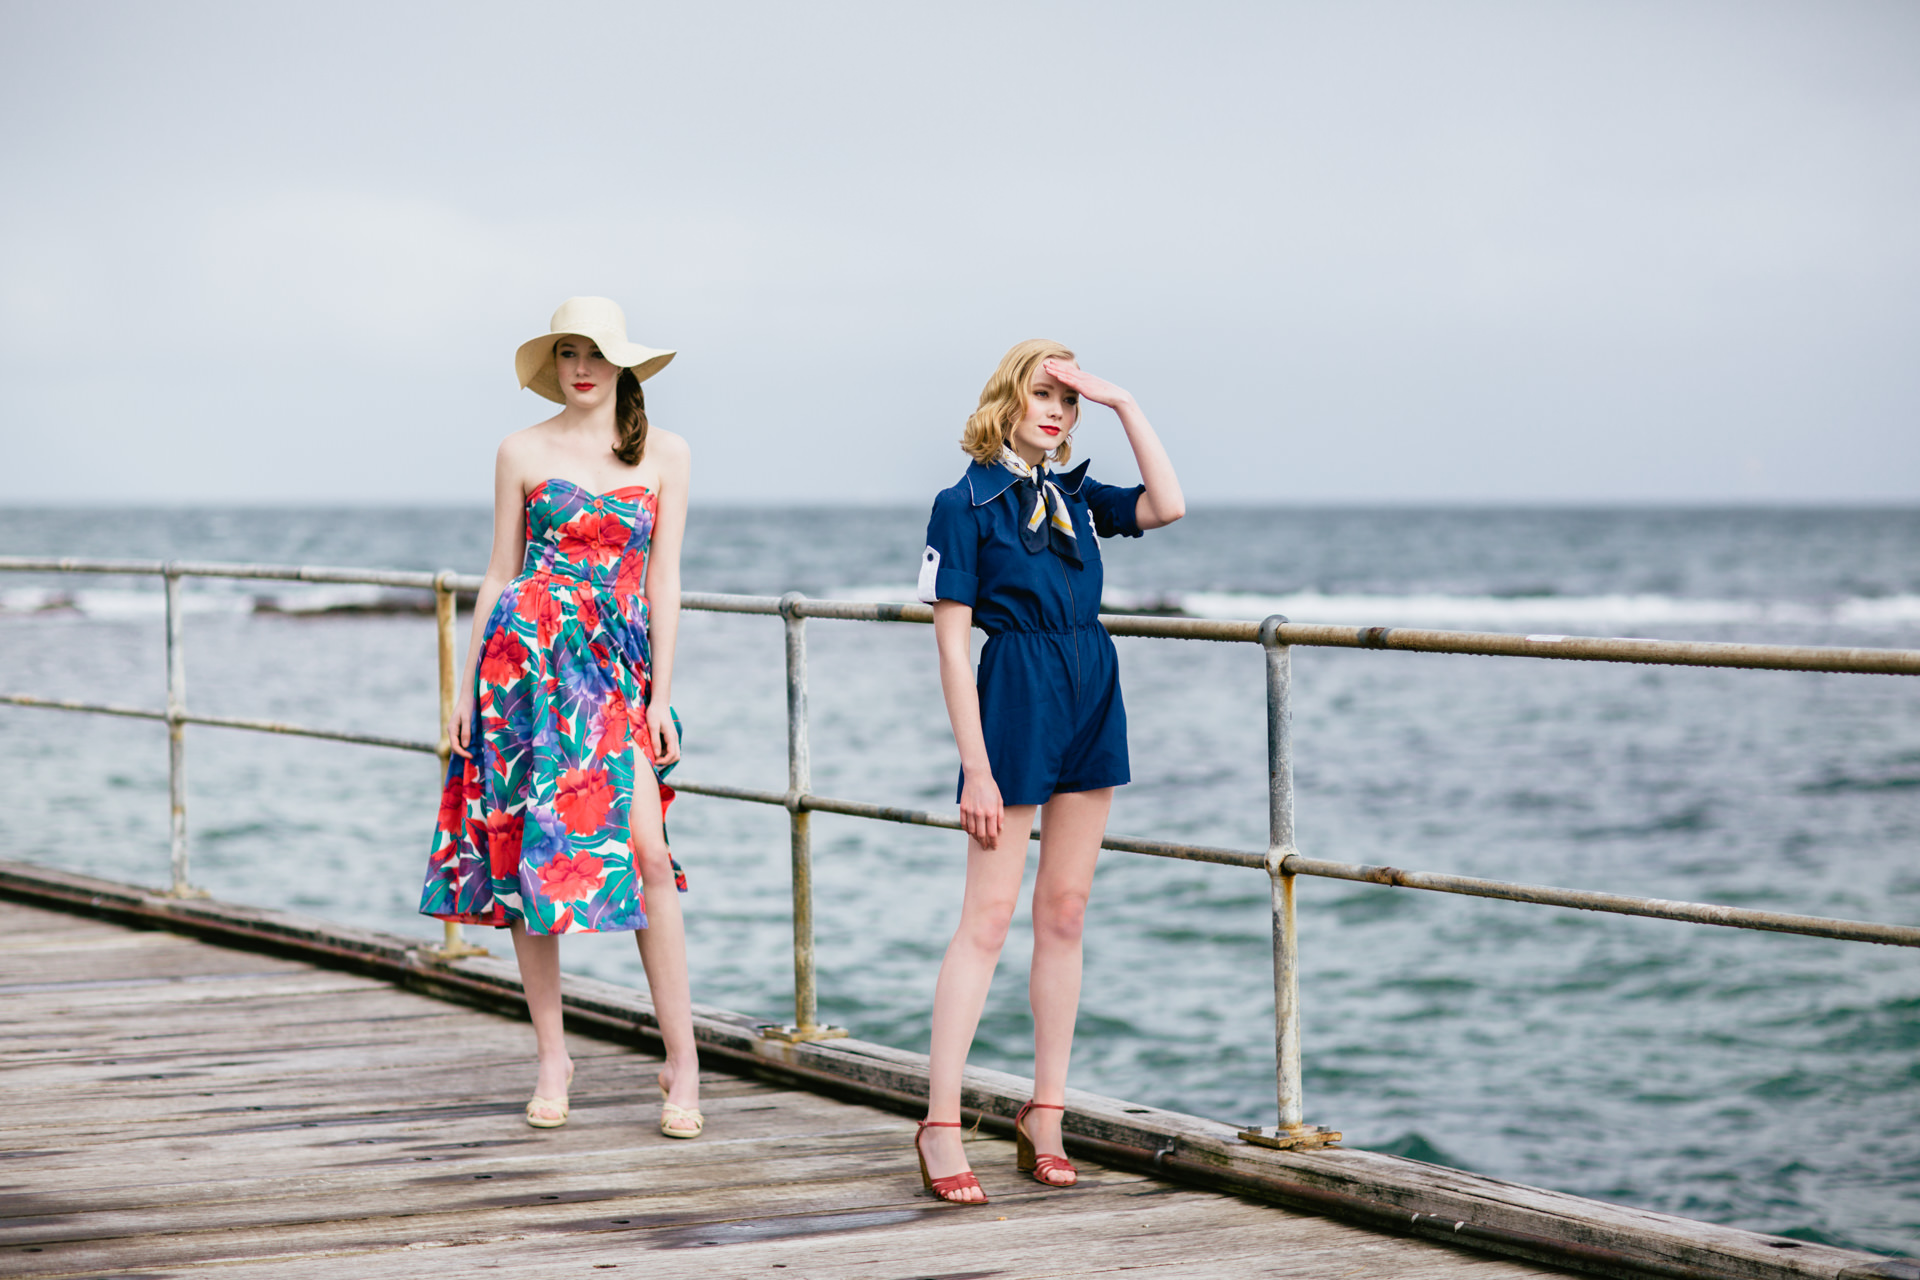 Summer Campaign Photography in Melbourne - Summer Fashion Shoot